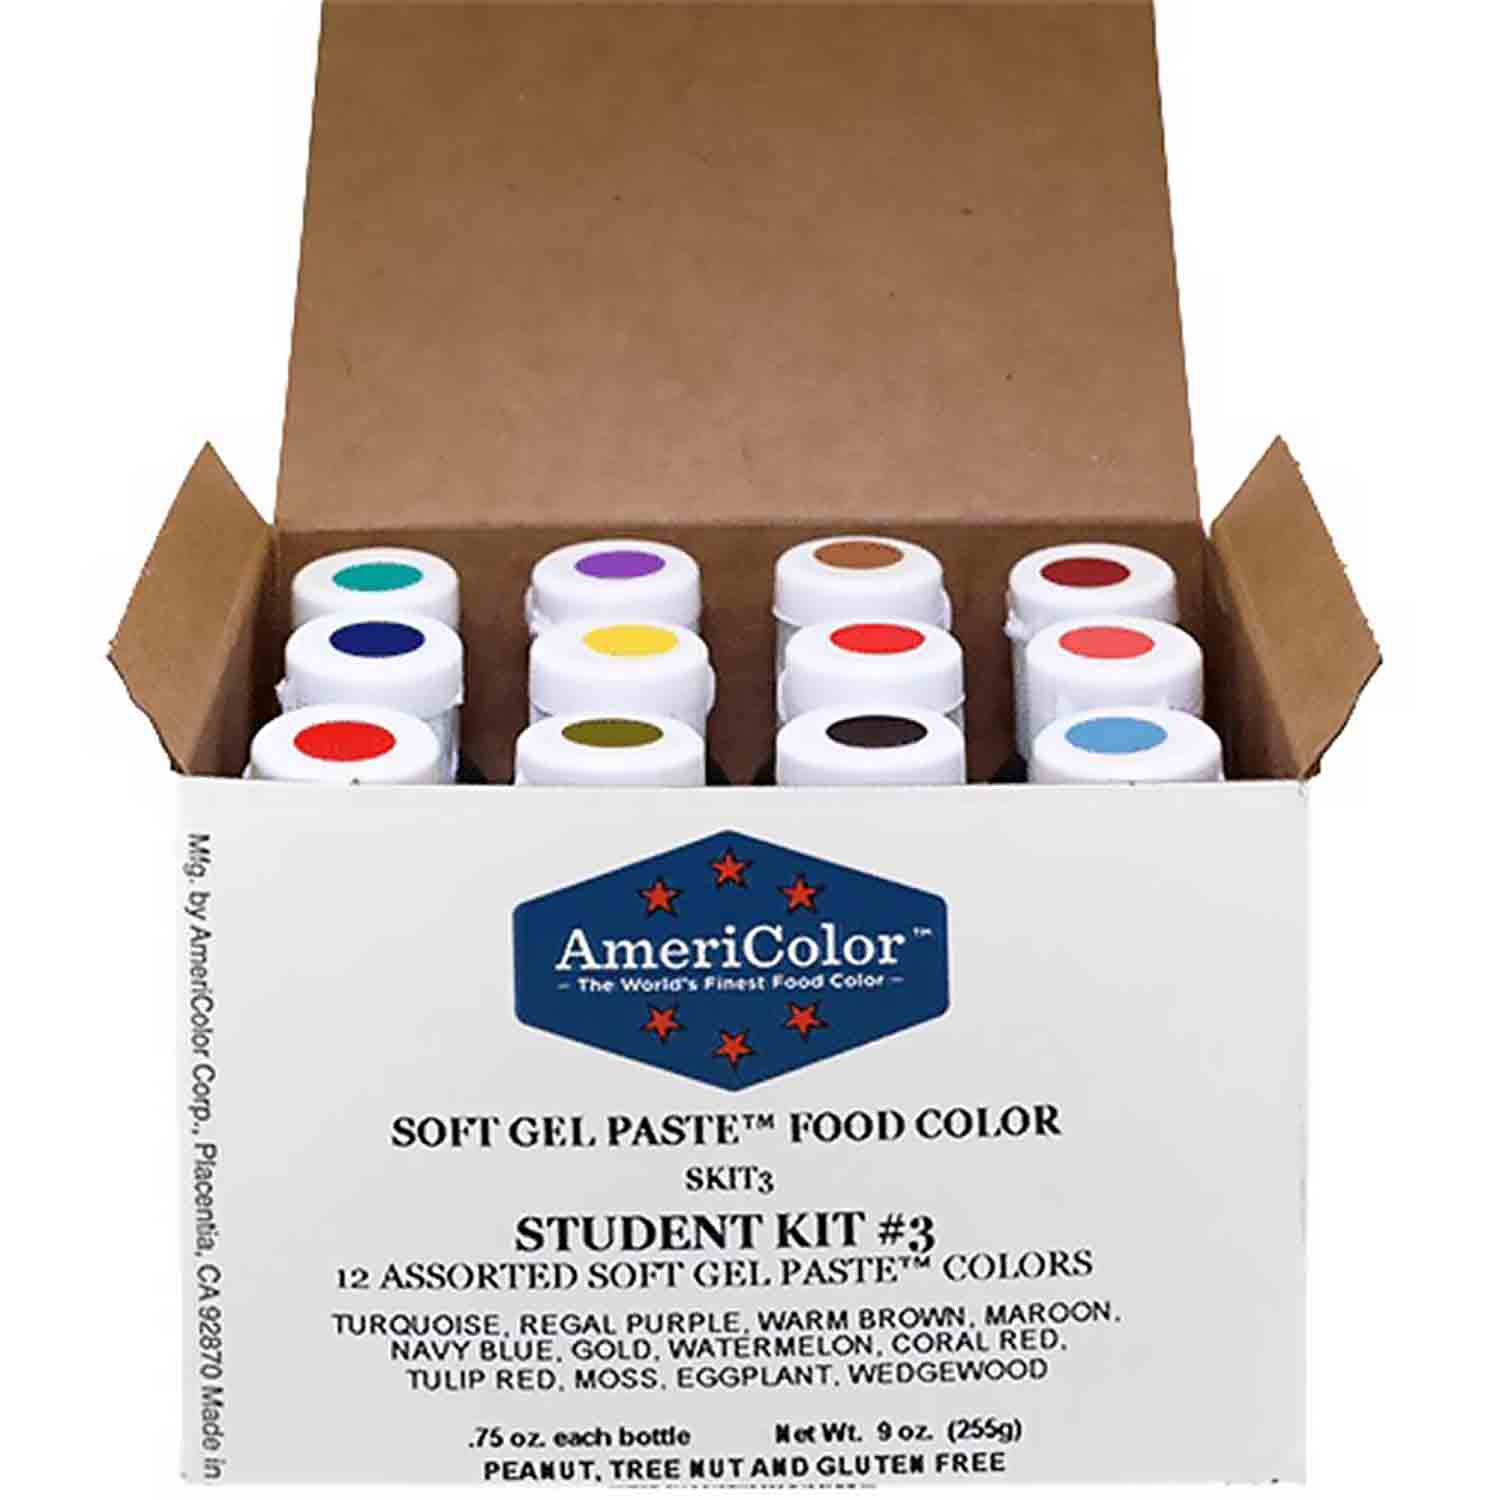 Student #3 AmeriColor® Soft Gel Paste™ Food Color Kit